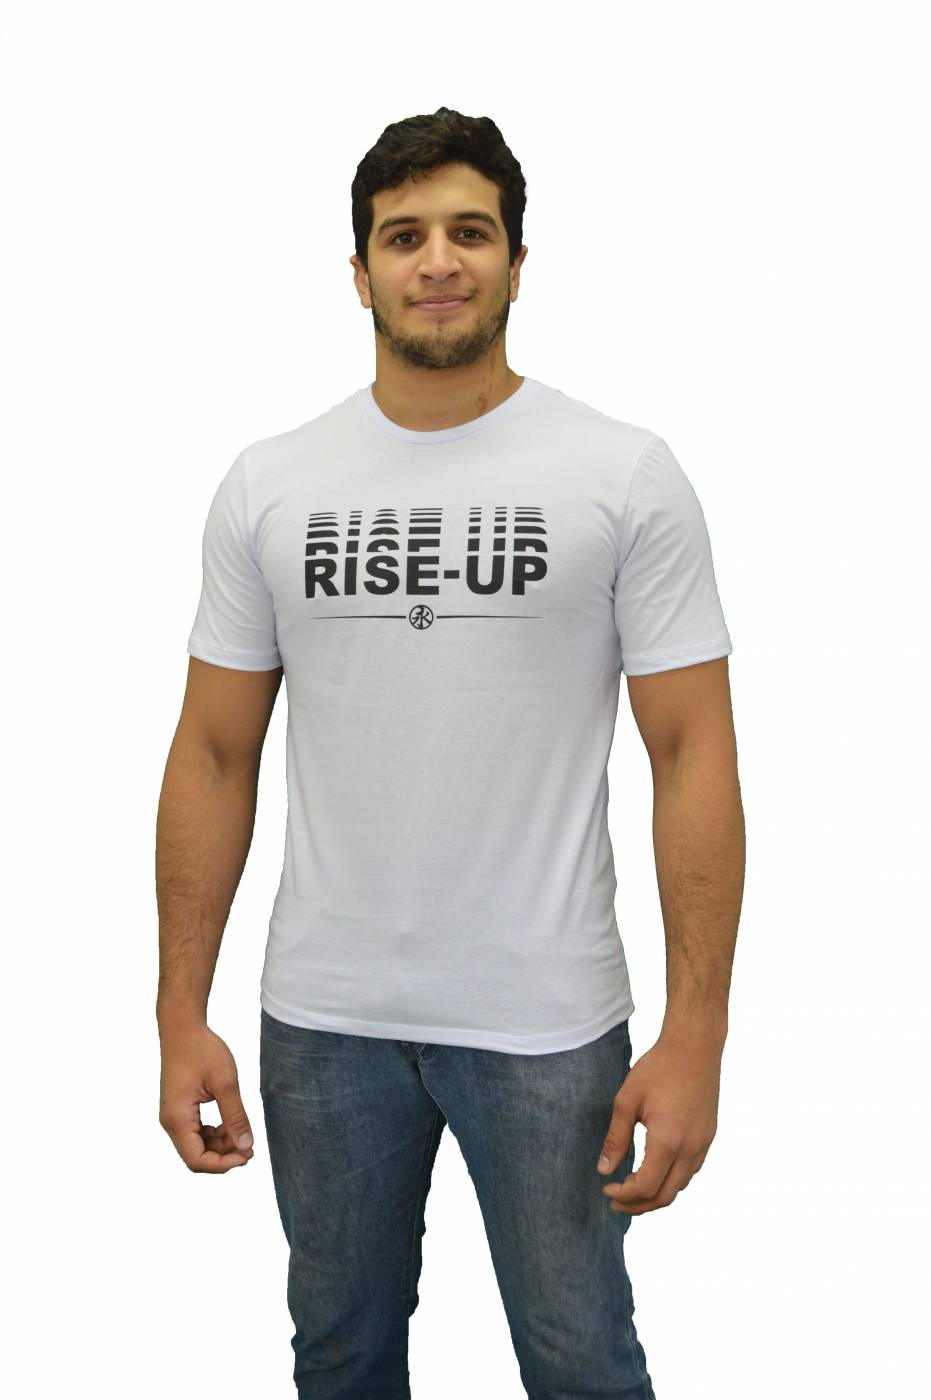 Rise-Up T-shirt - White